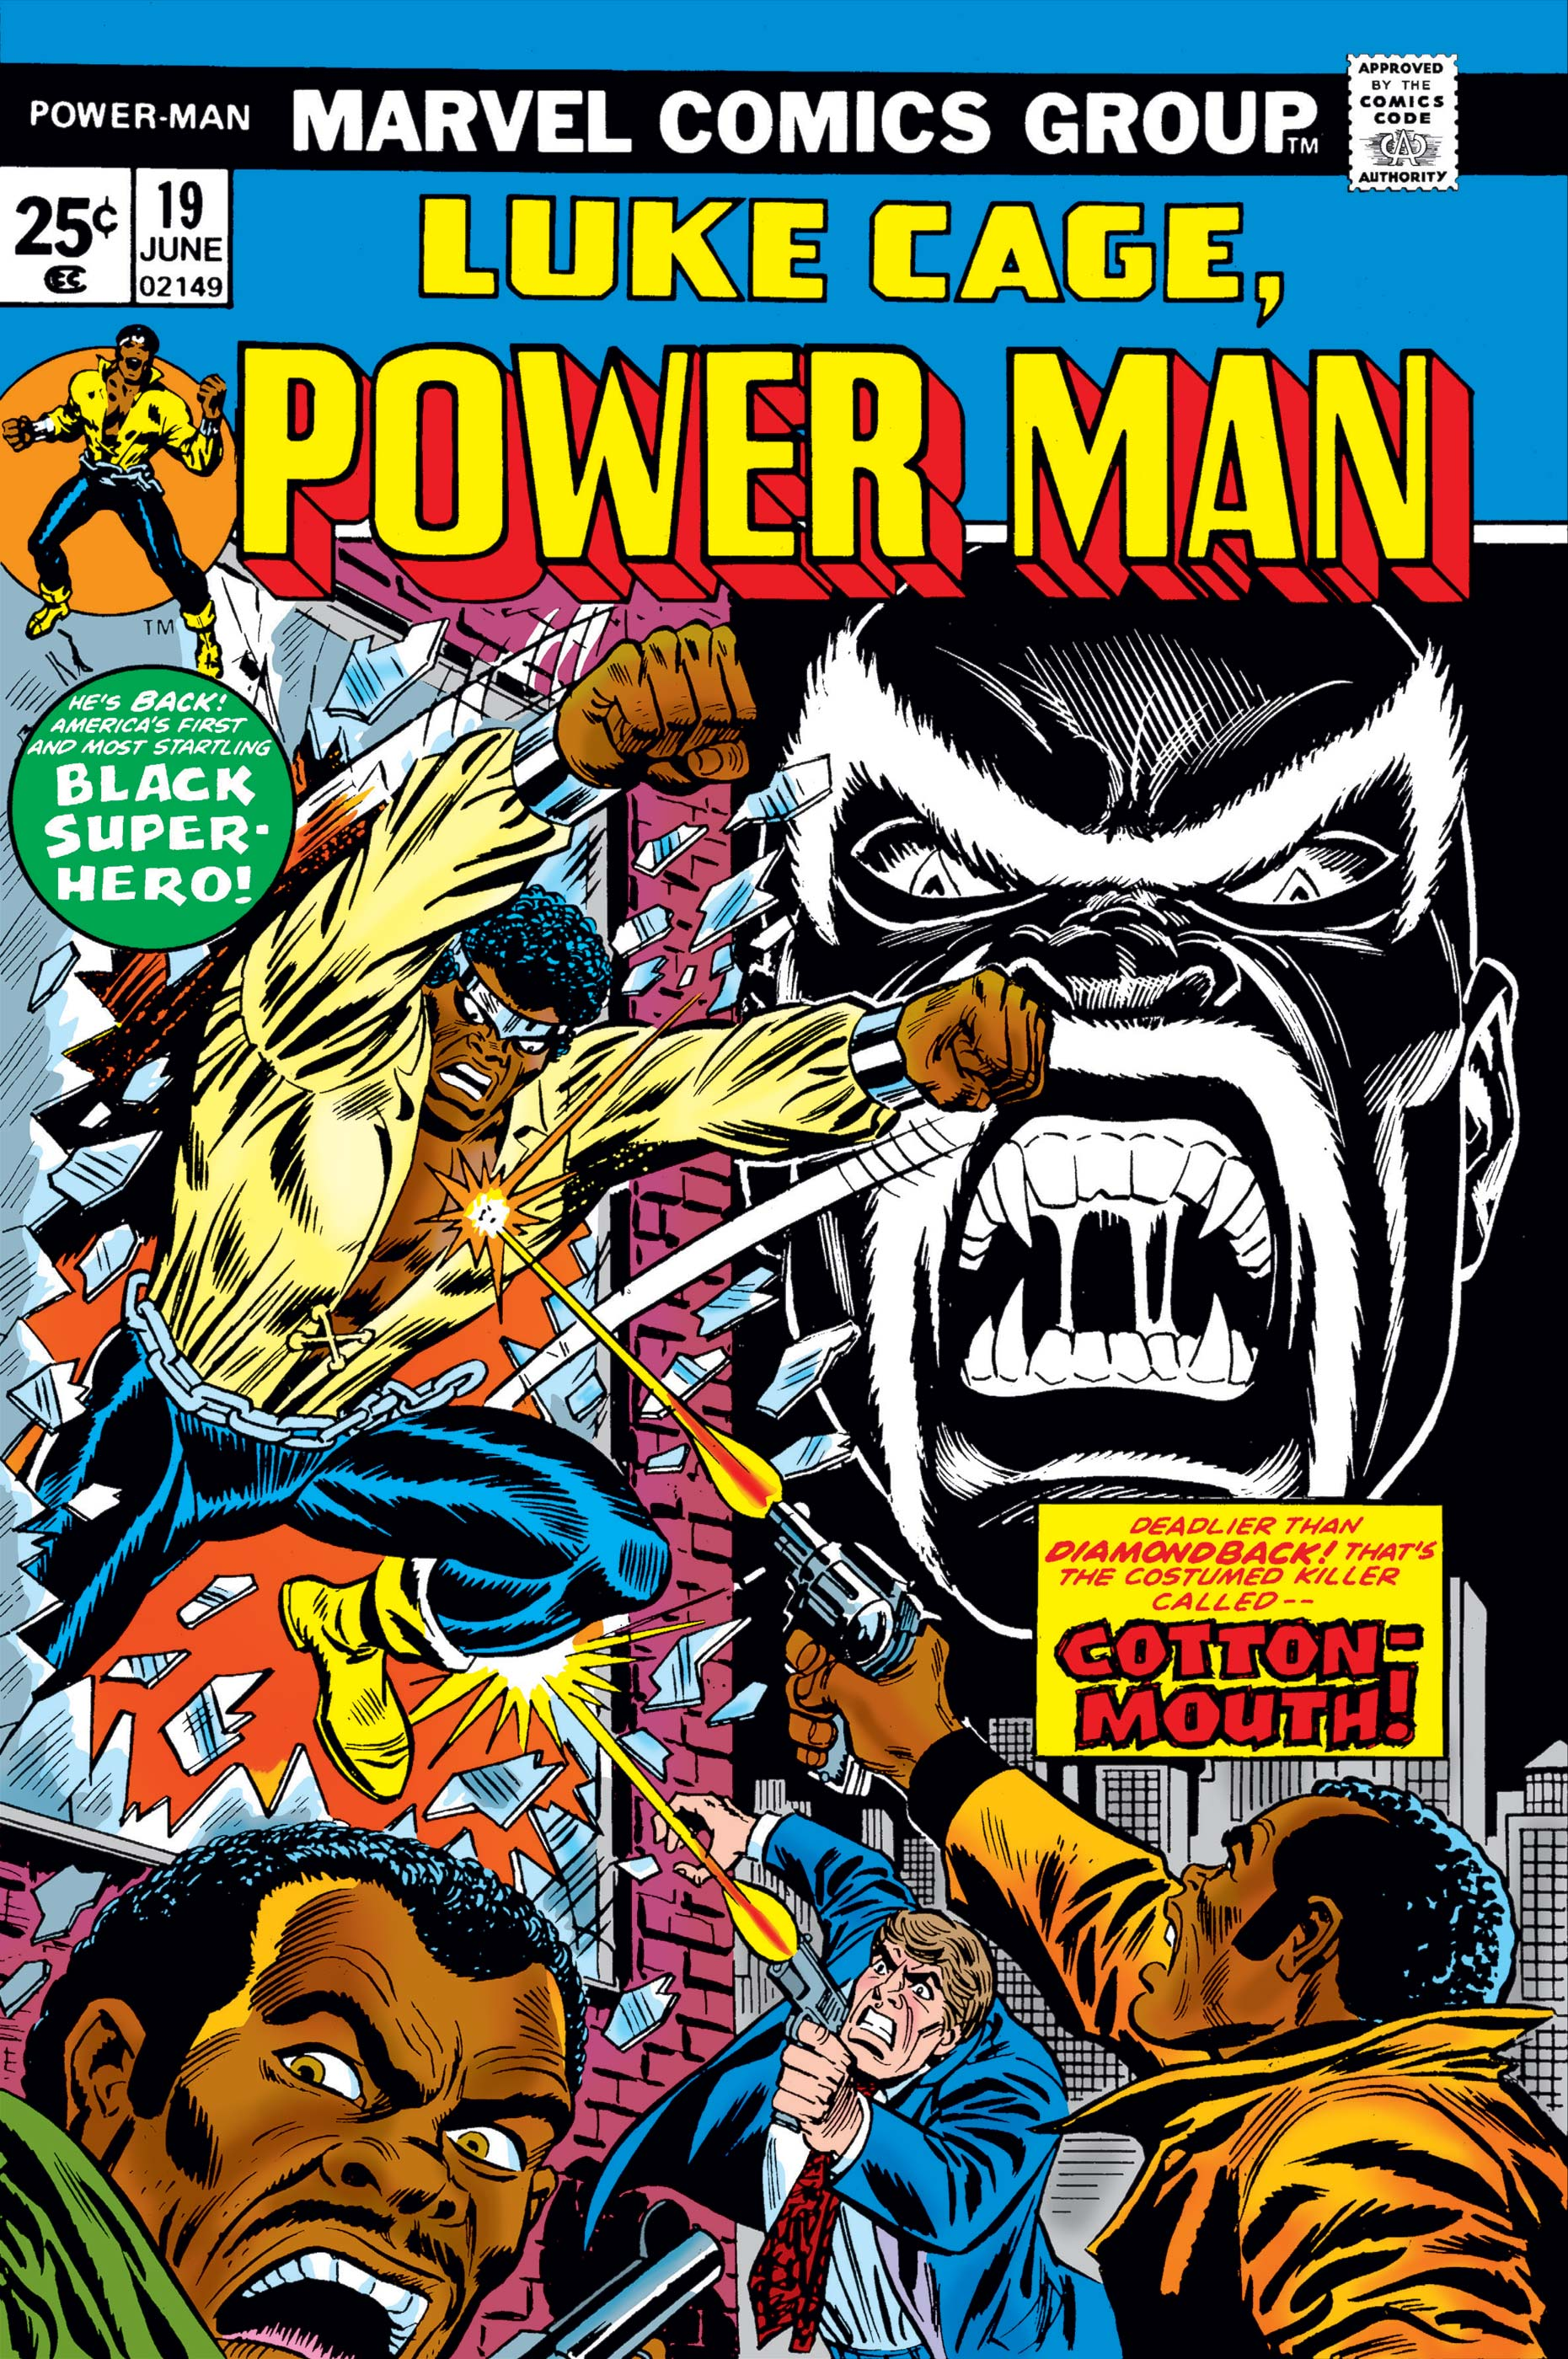 Power Man (1974) #19